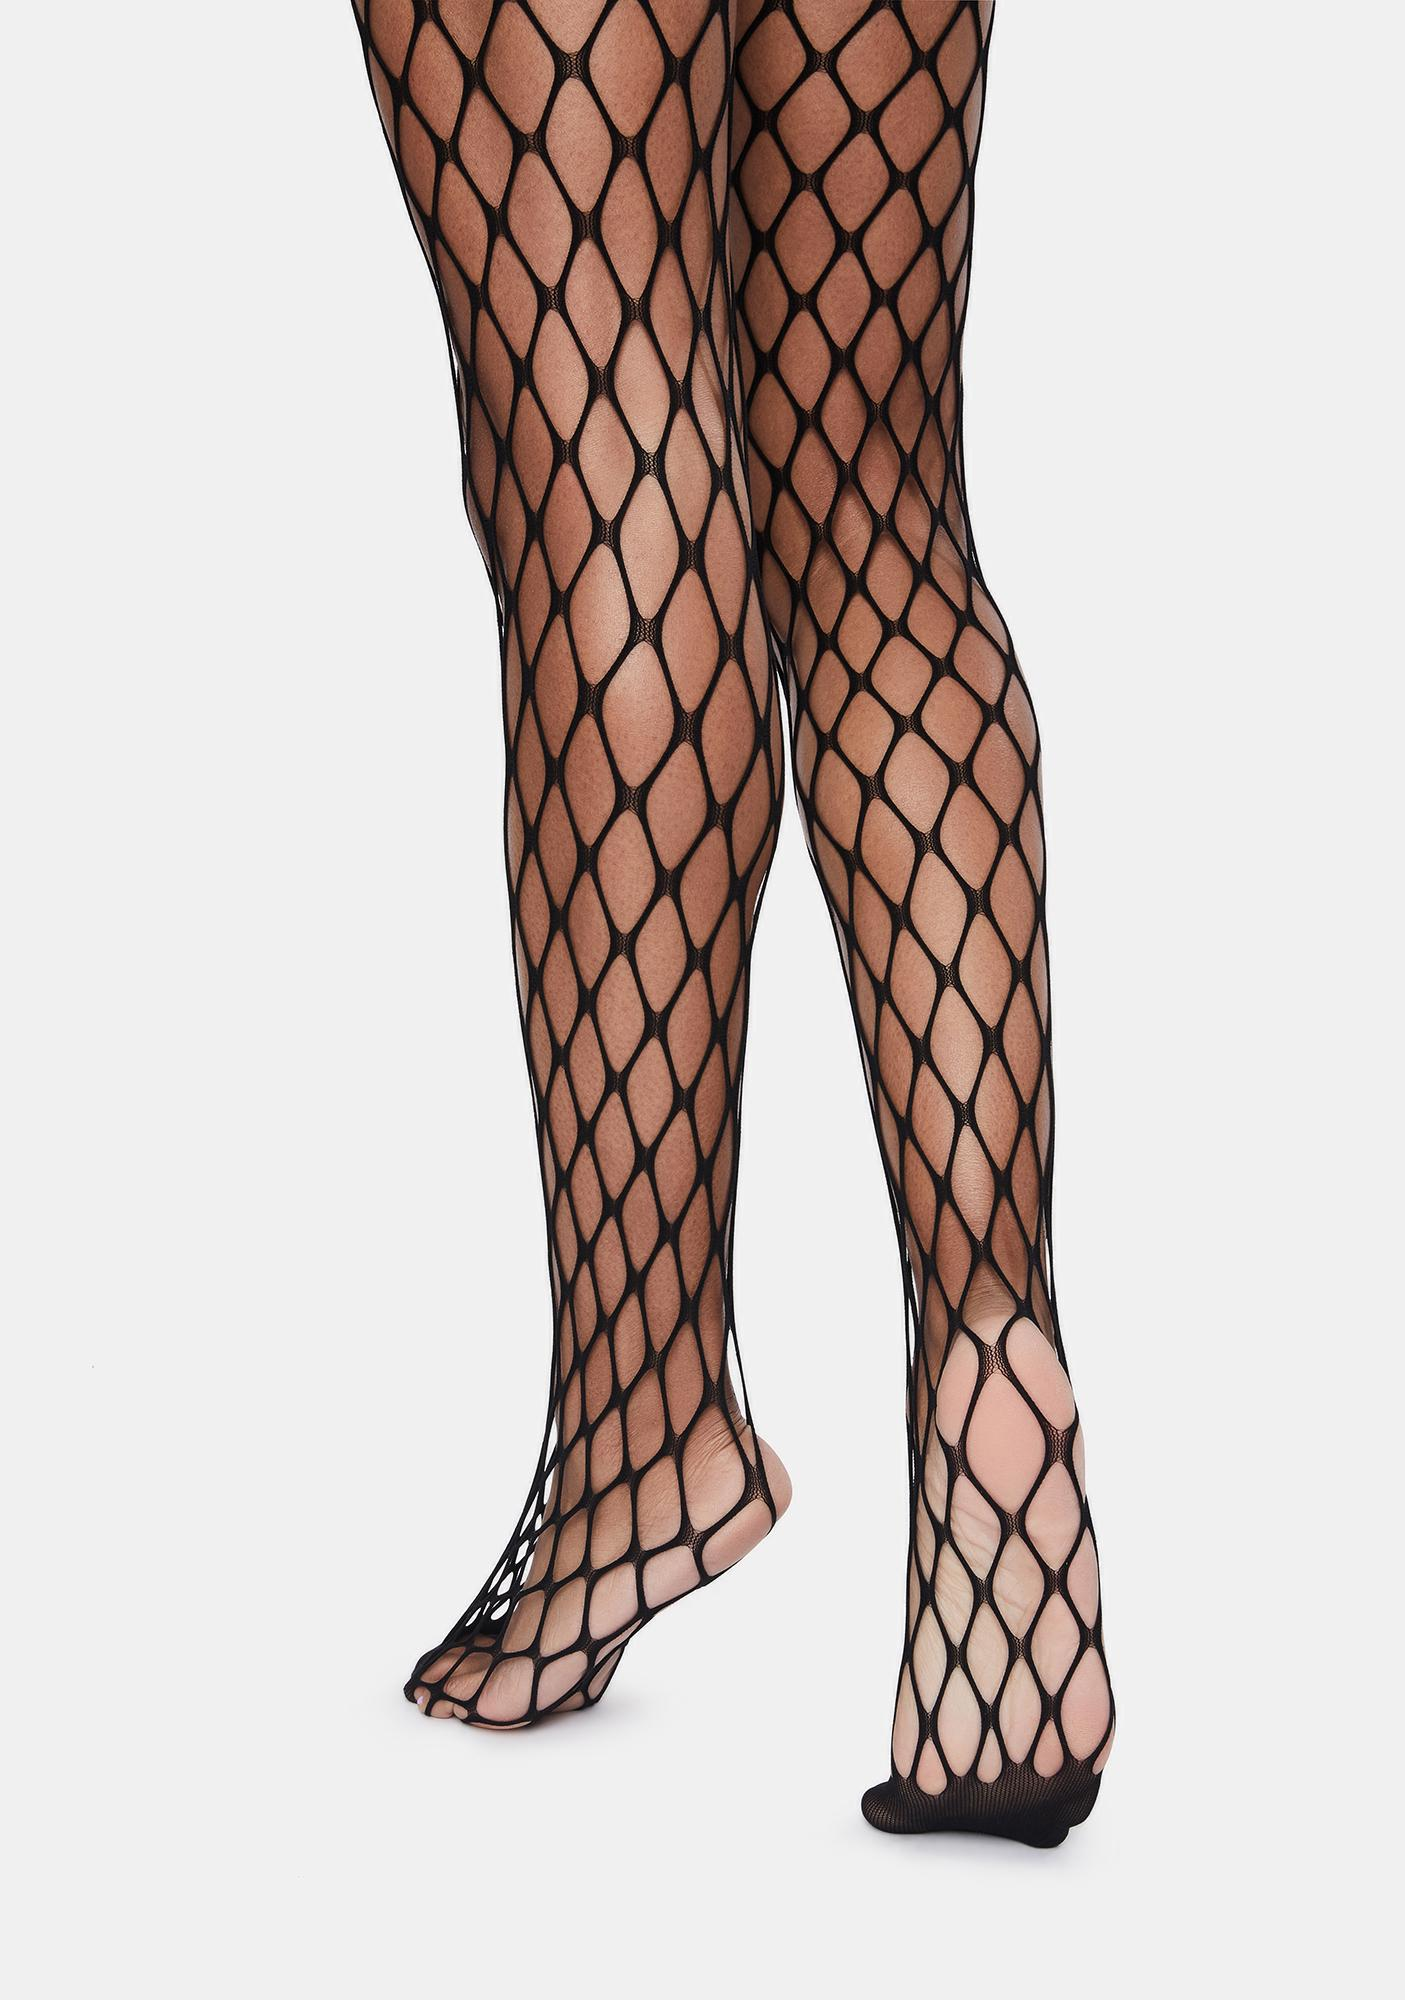 MeMoi Black Flirty Maxi Net Tights